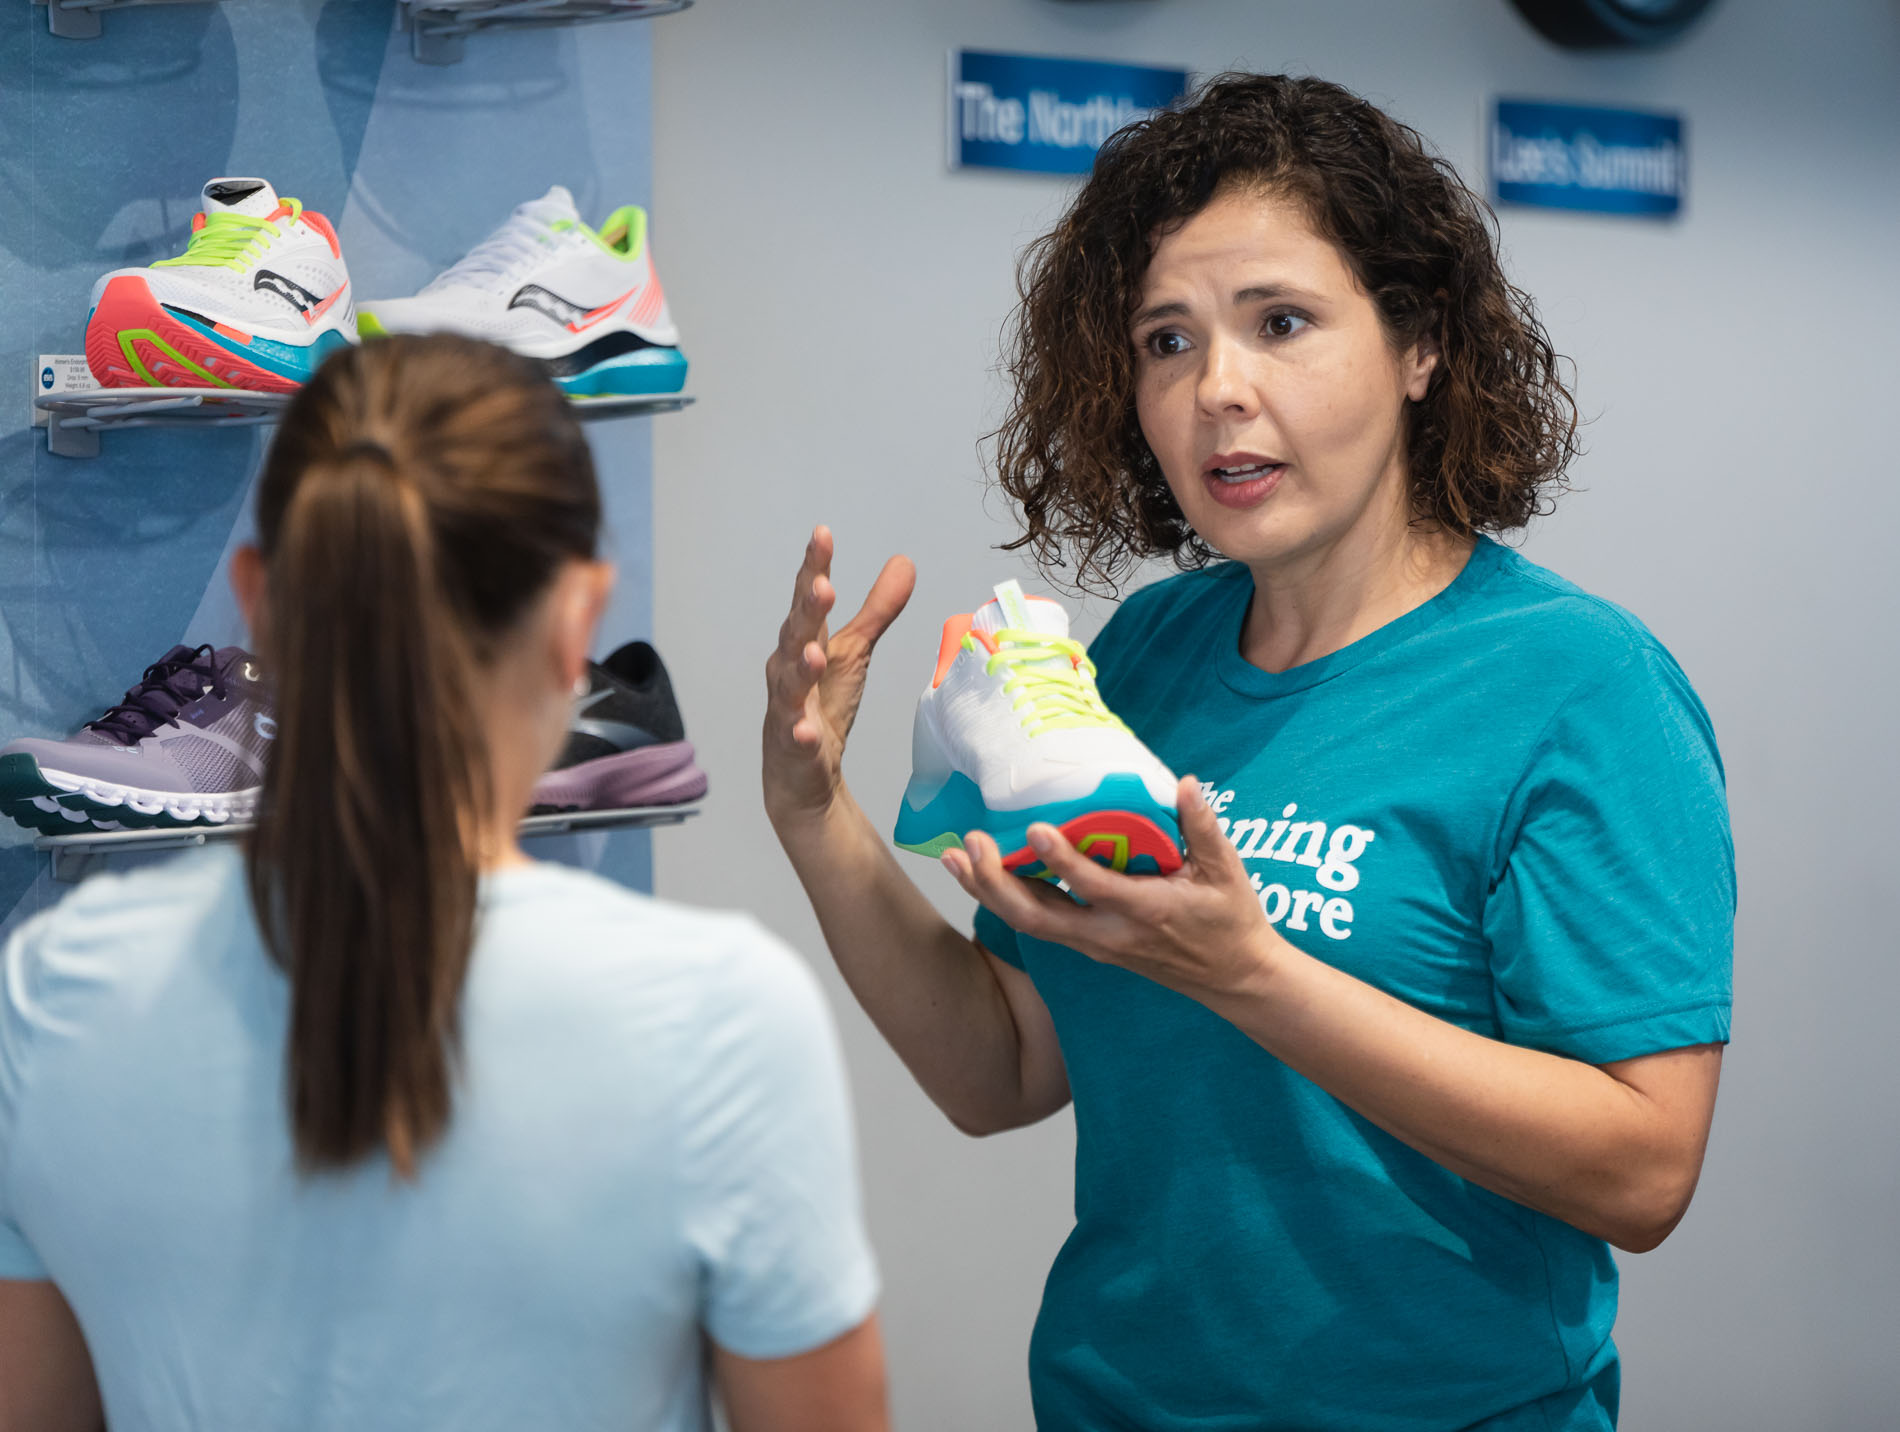 the running well store employee explaining proper shoe fit to a customer